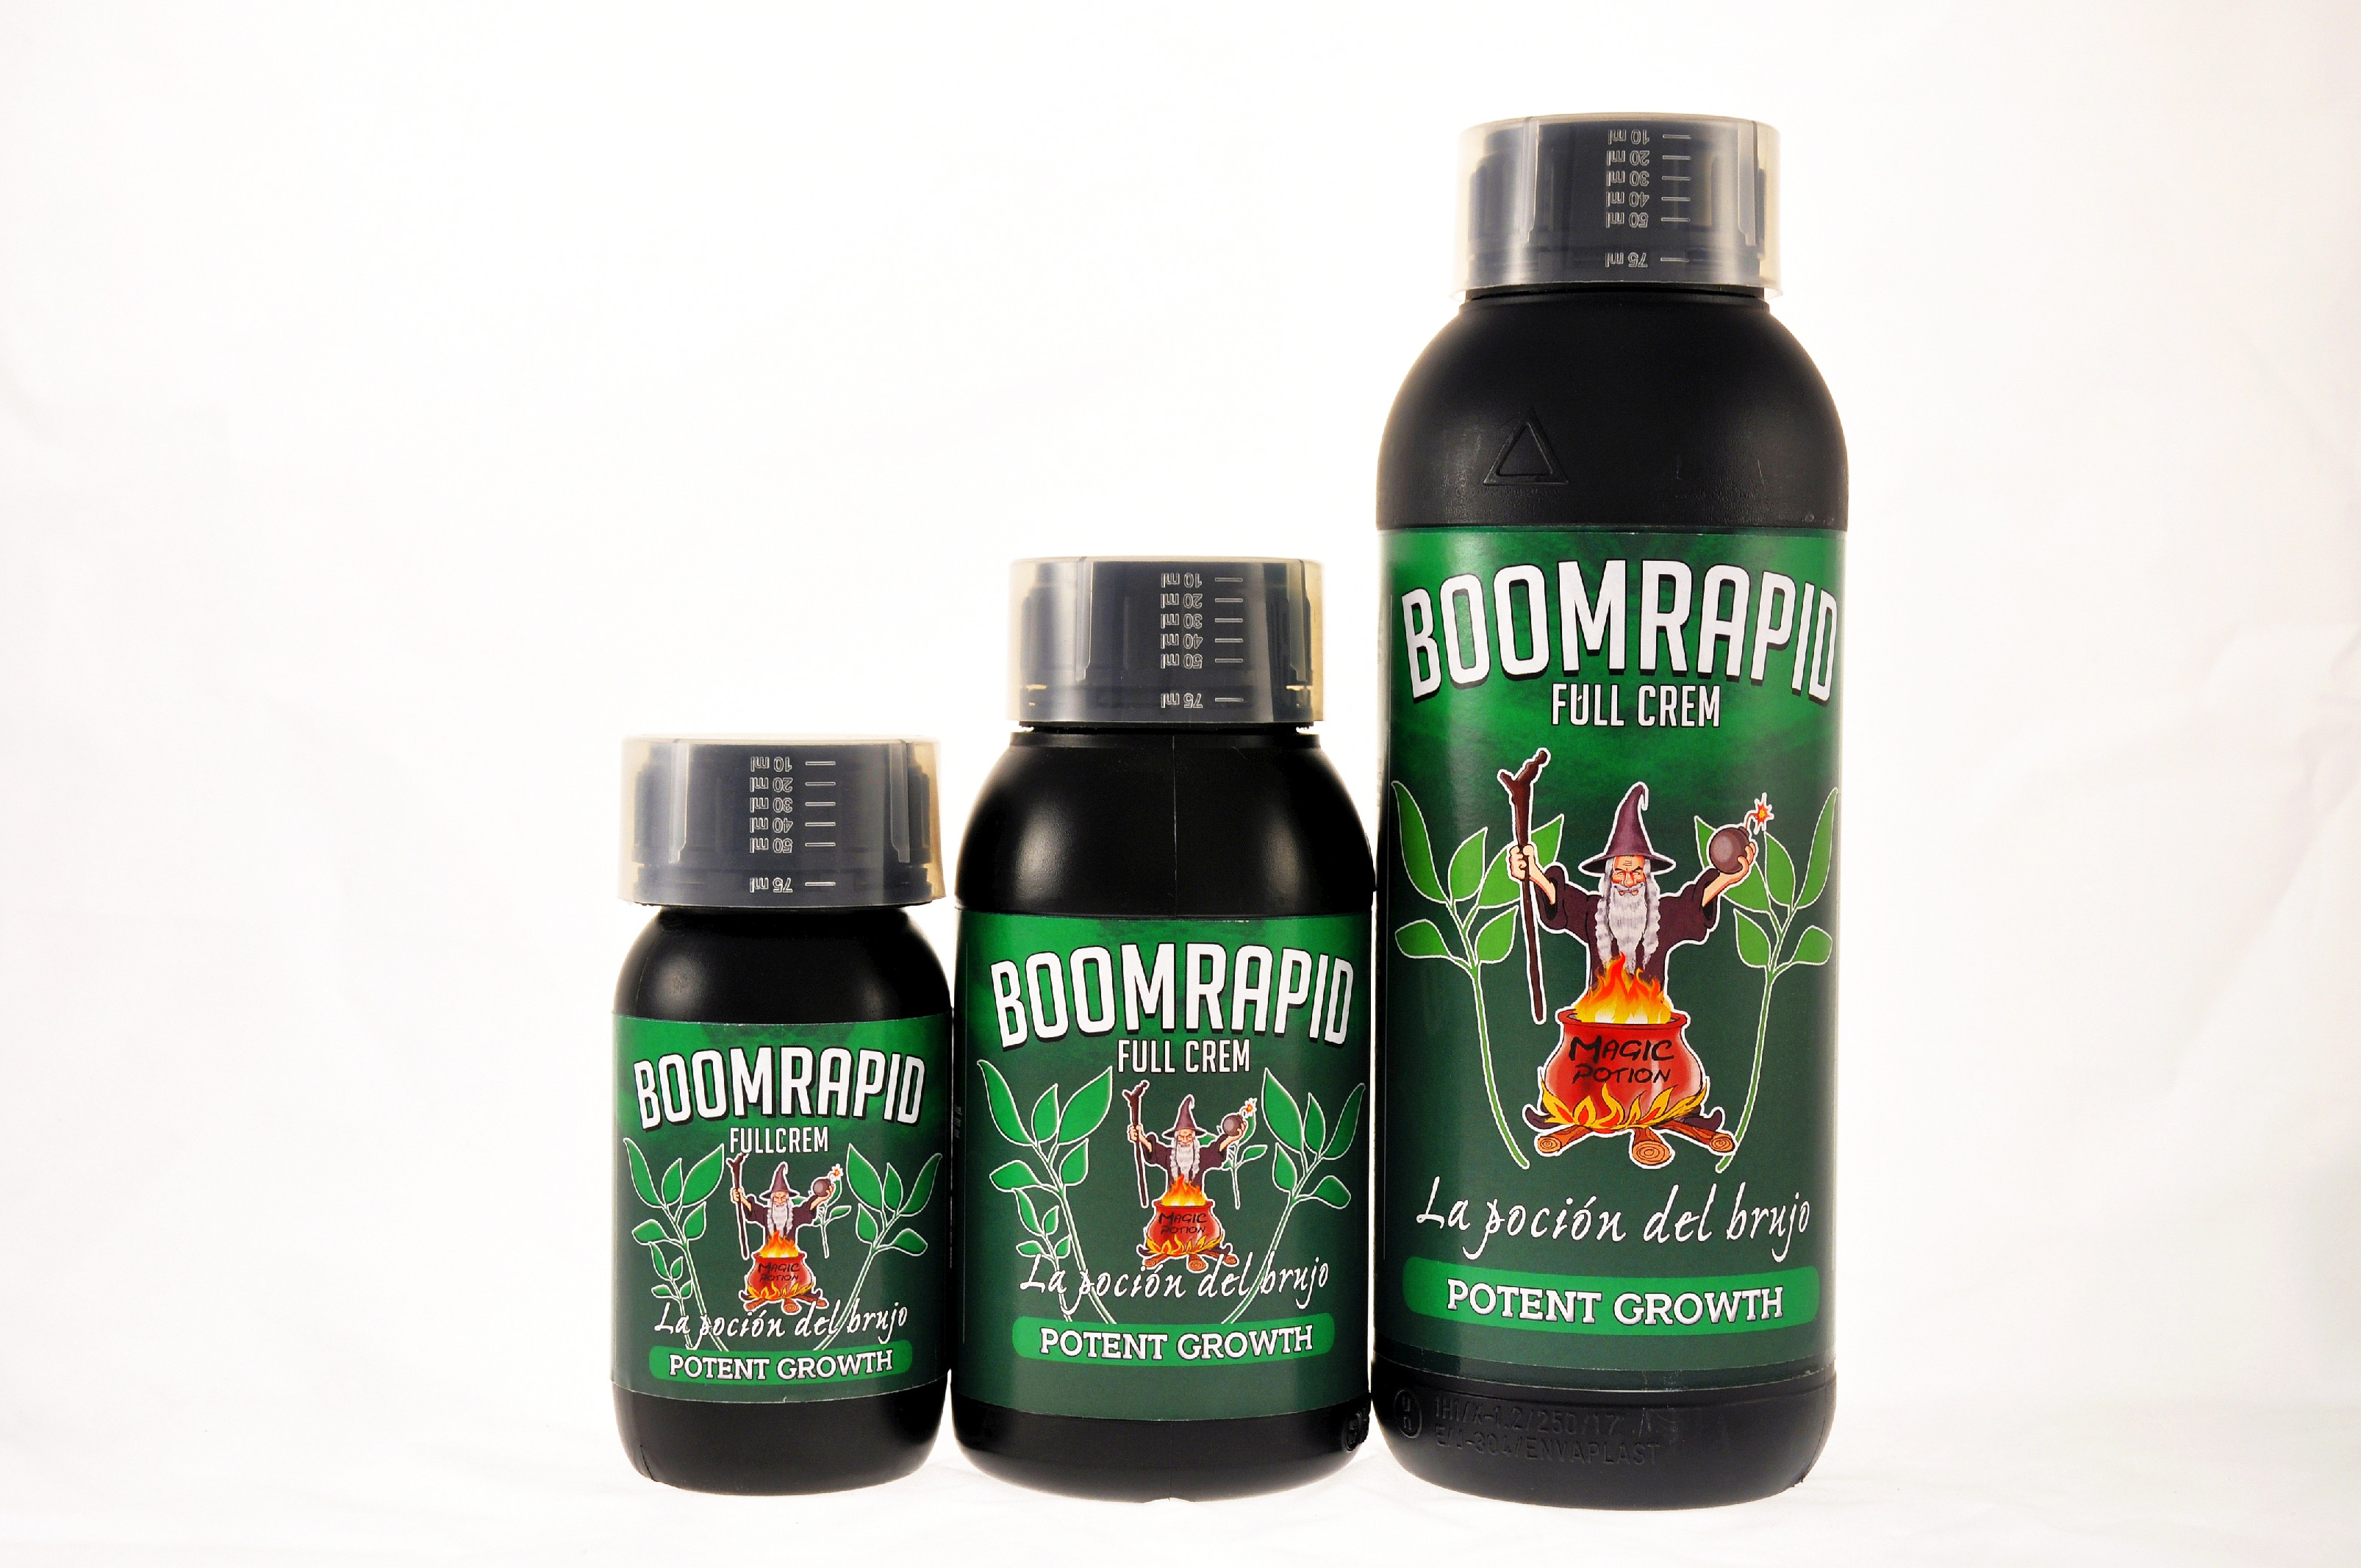 CANNABOOM - Boomrapid Fullcrem 600ml